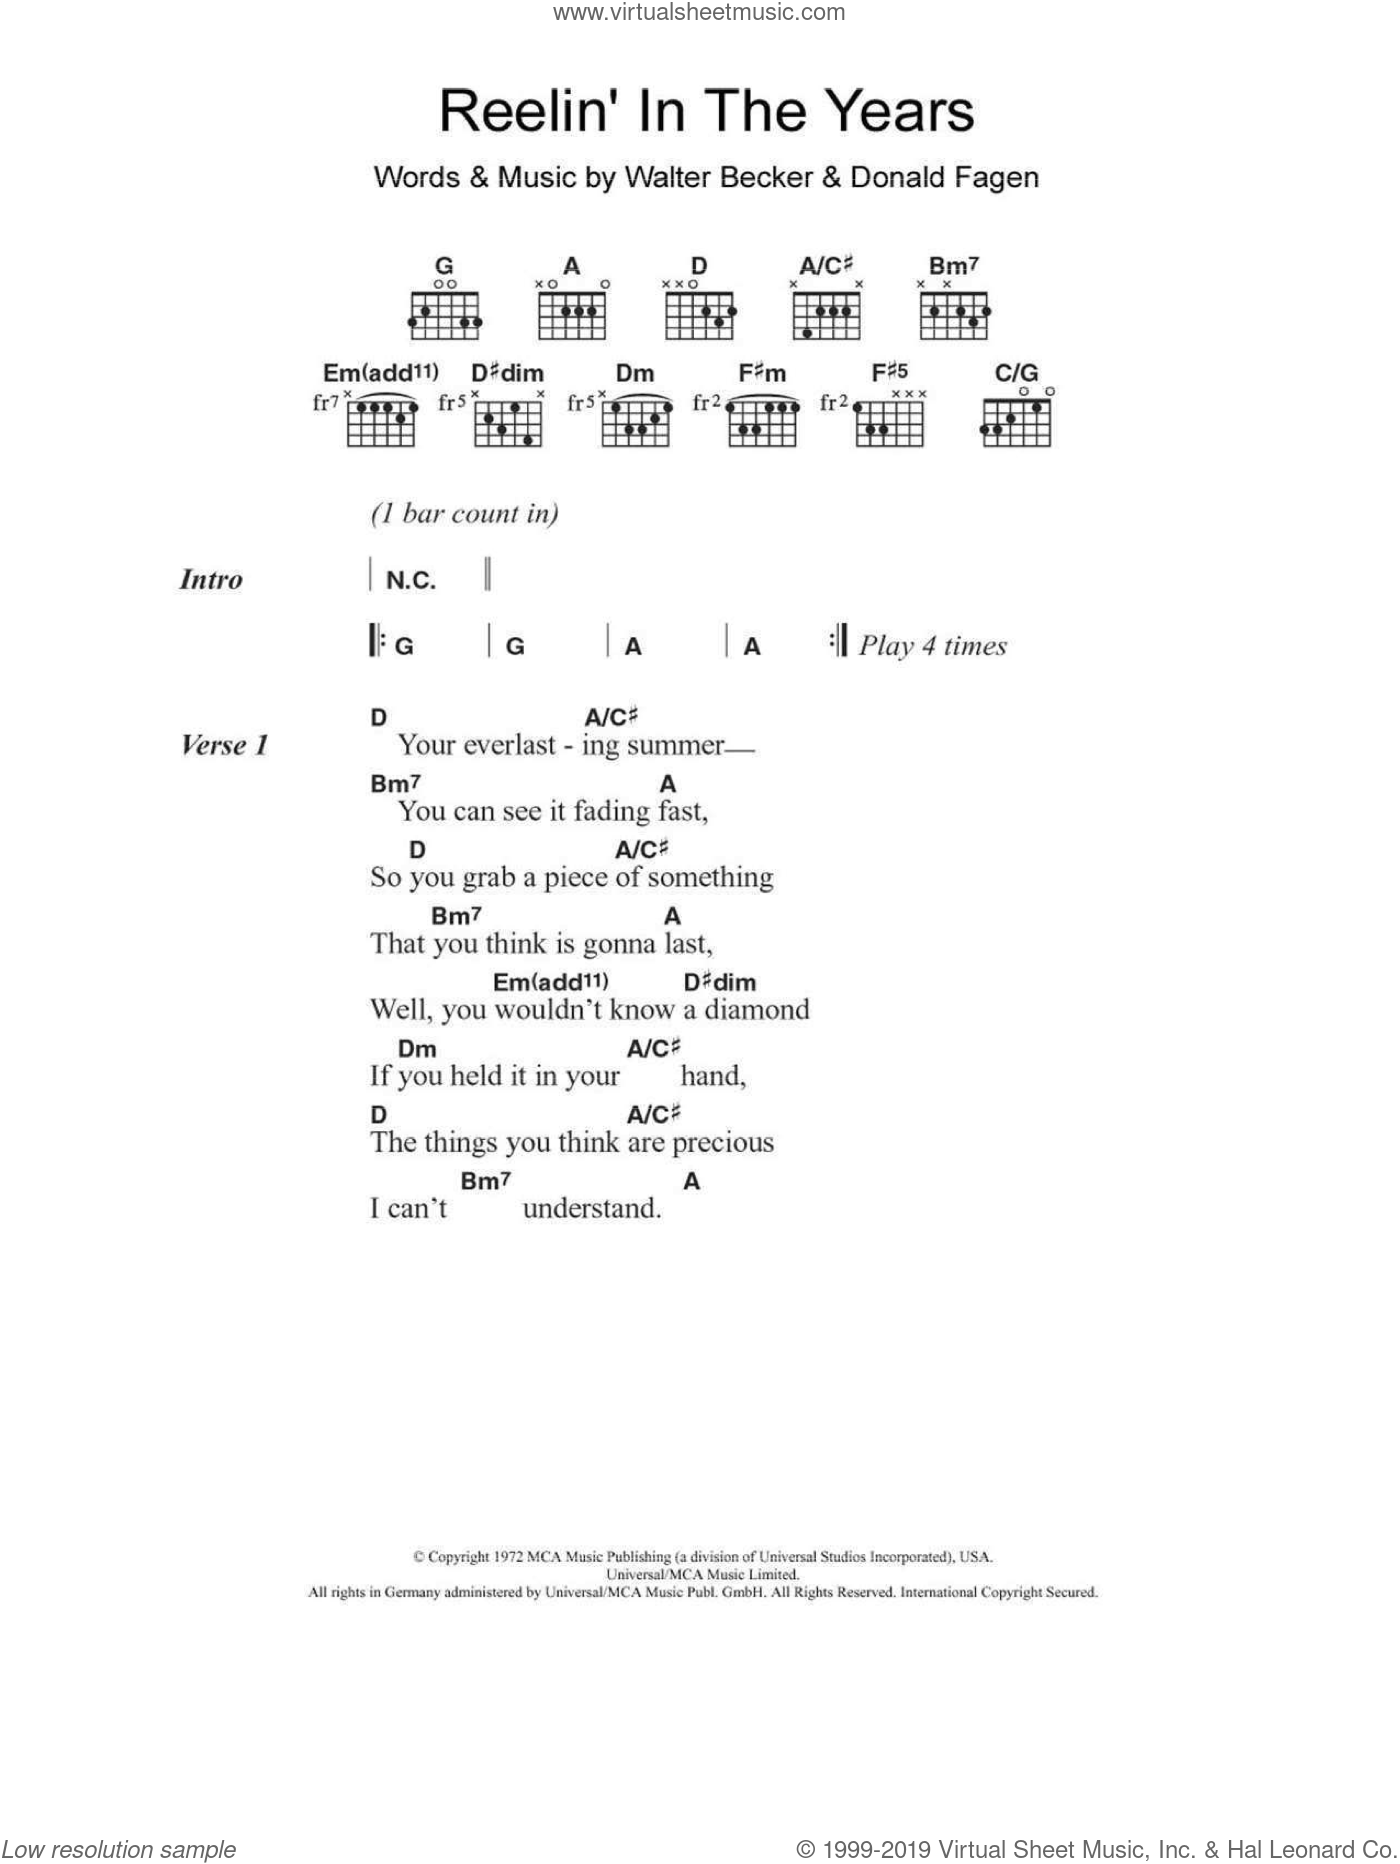 Reelin' In The Years sheet music for guitar (chords) by Walter Becker and Donald Fagen. Score Image Preview.